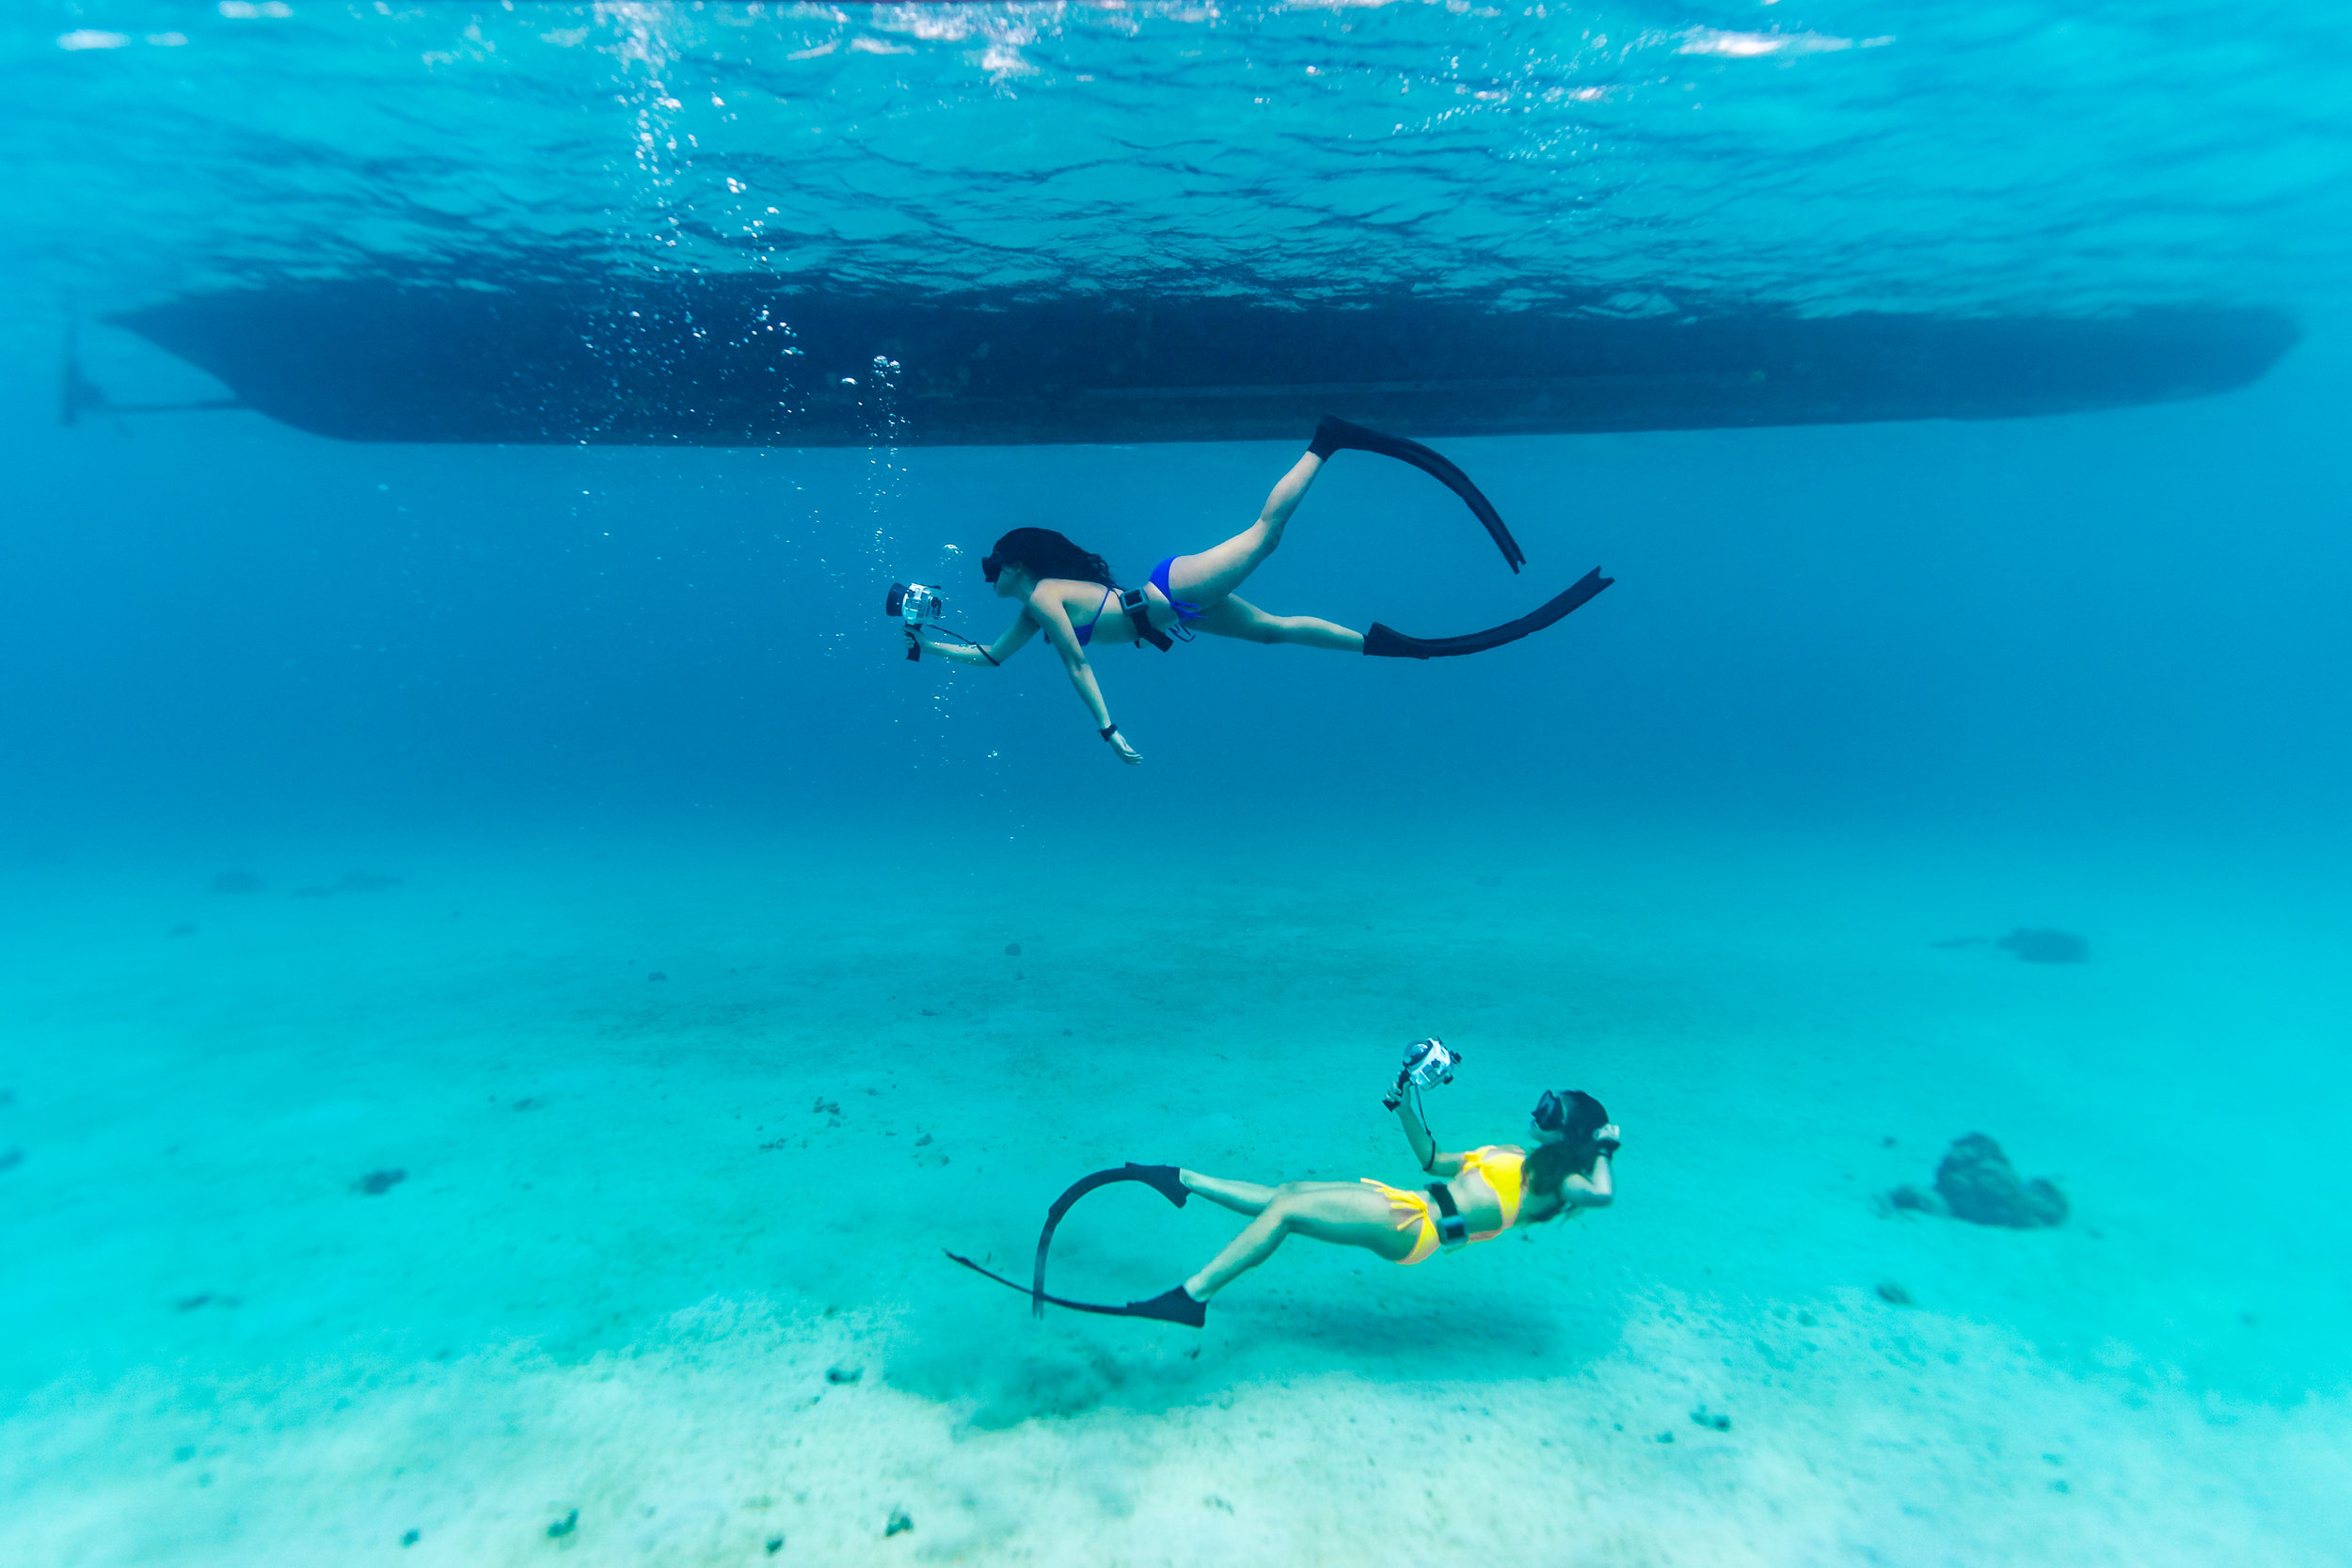 Free divers from  Azul Freediving  shooting with Sea Frogs UW housing for Sony A6xxx series Salted Line. Image taken with Sony a9 www.christiaanhart.com